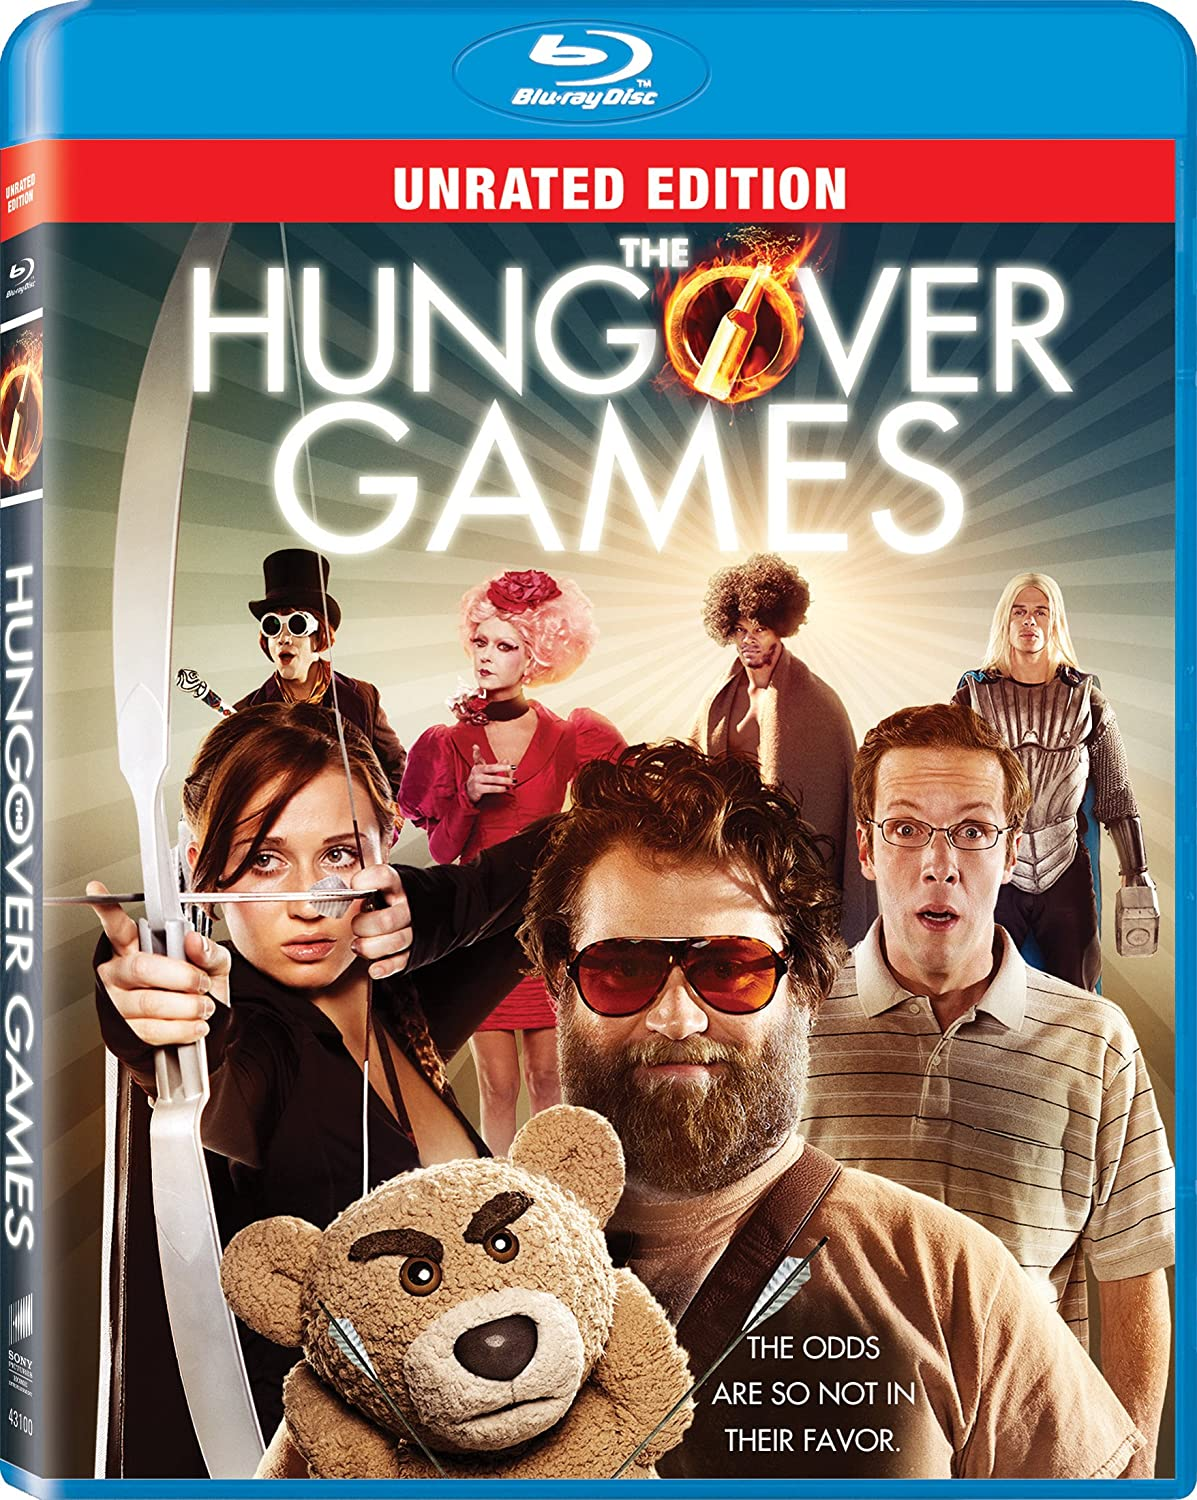 The Game Blu Ray Games Unrated Blu-ray